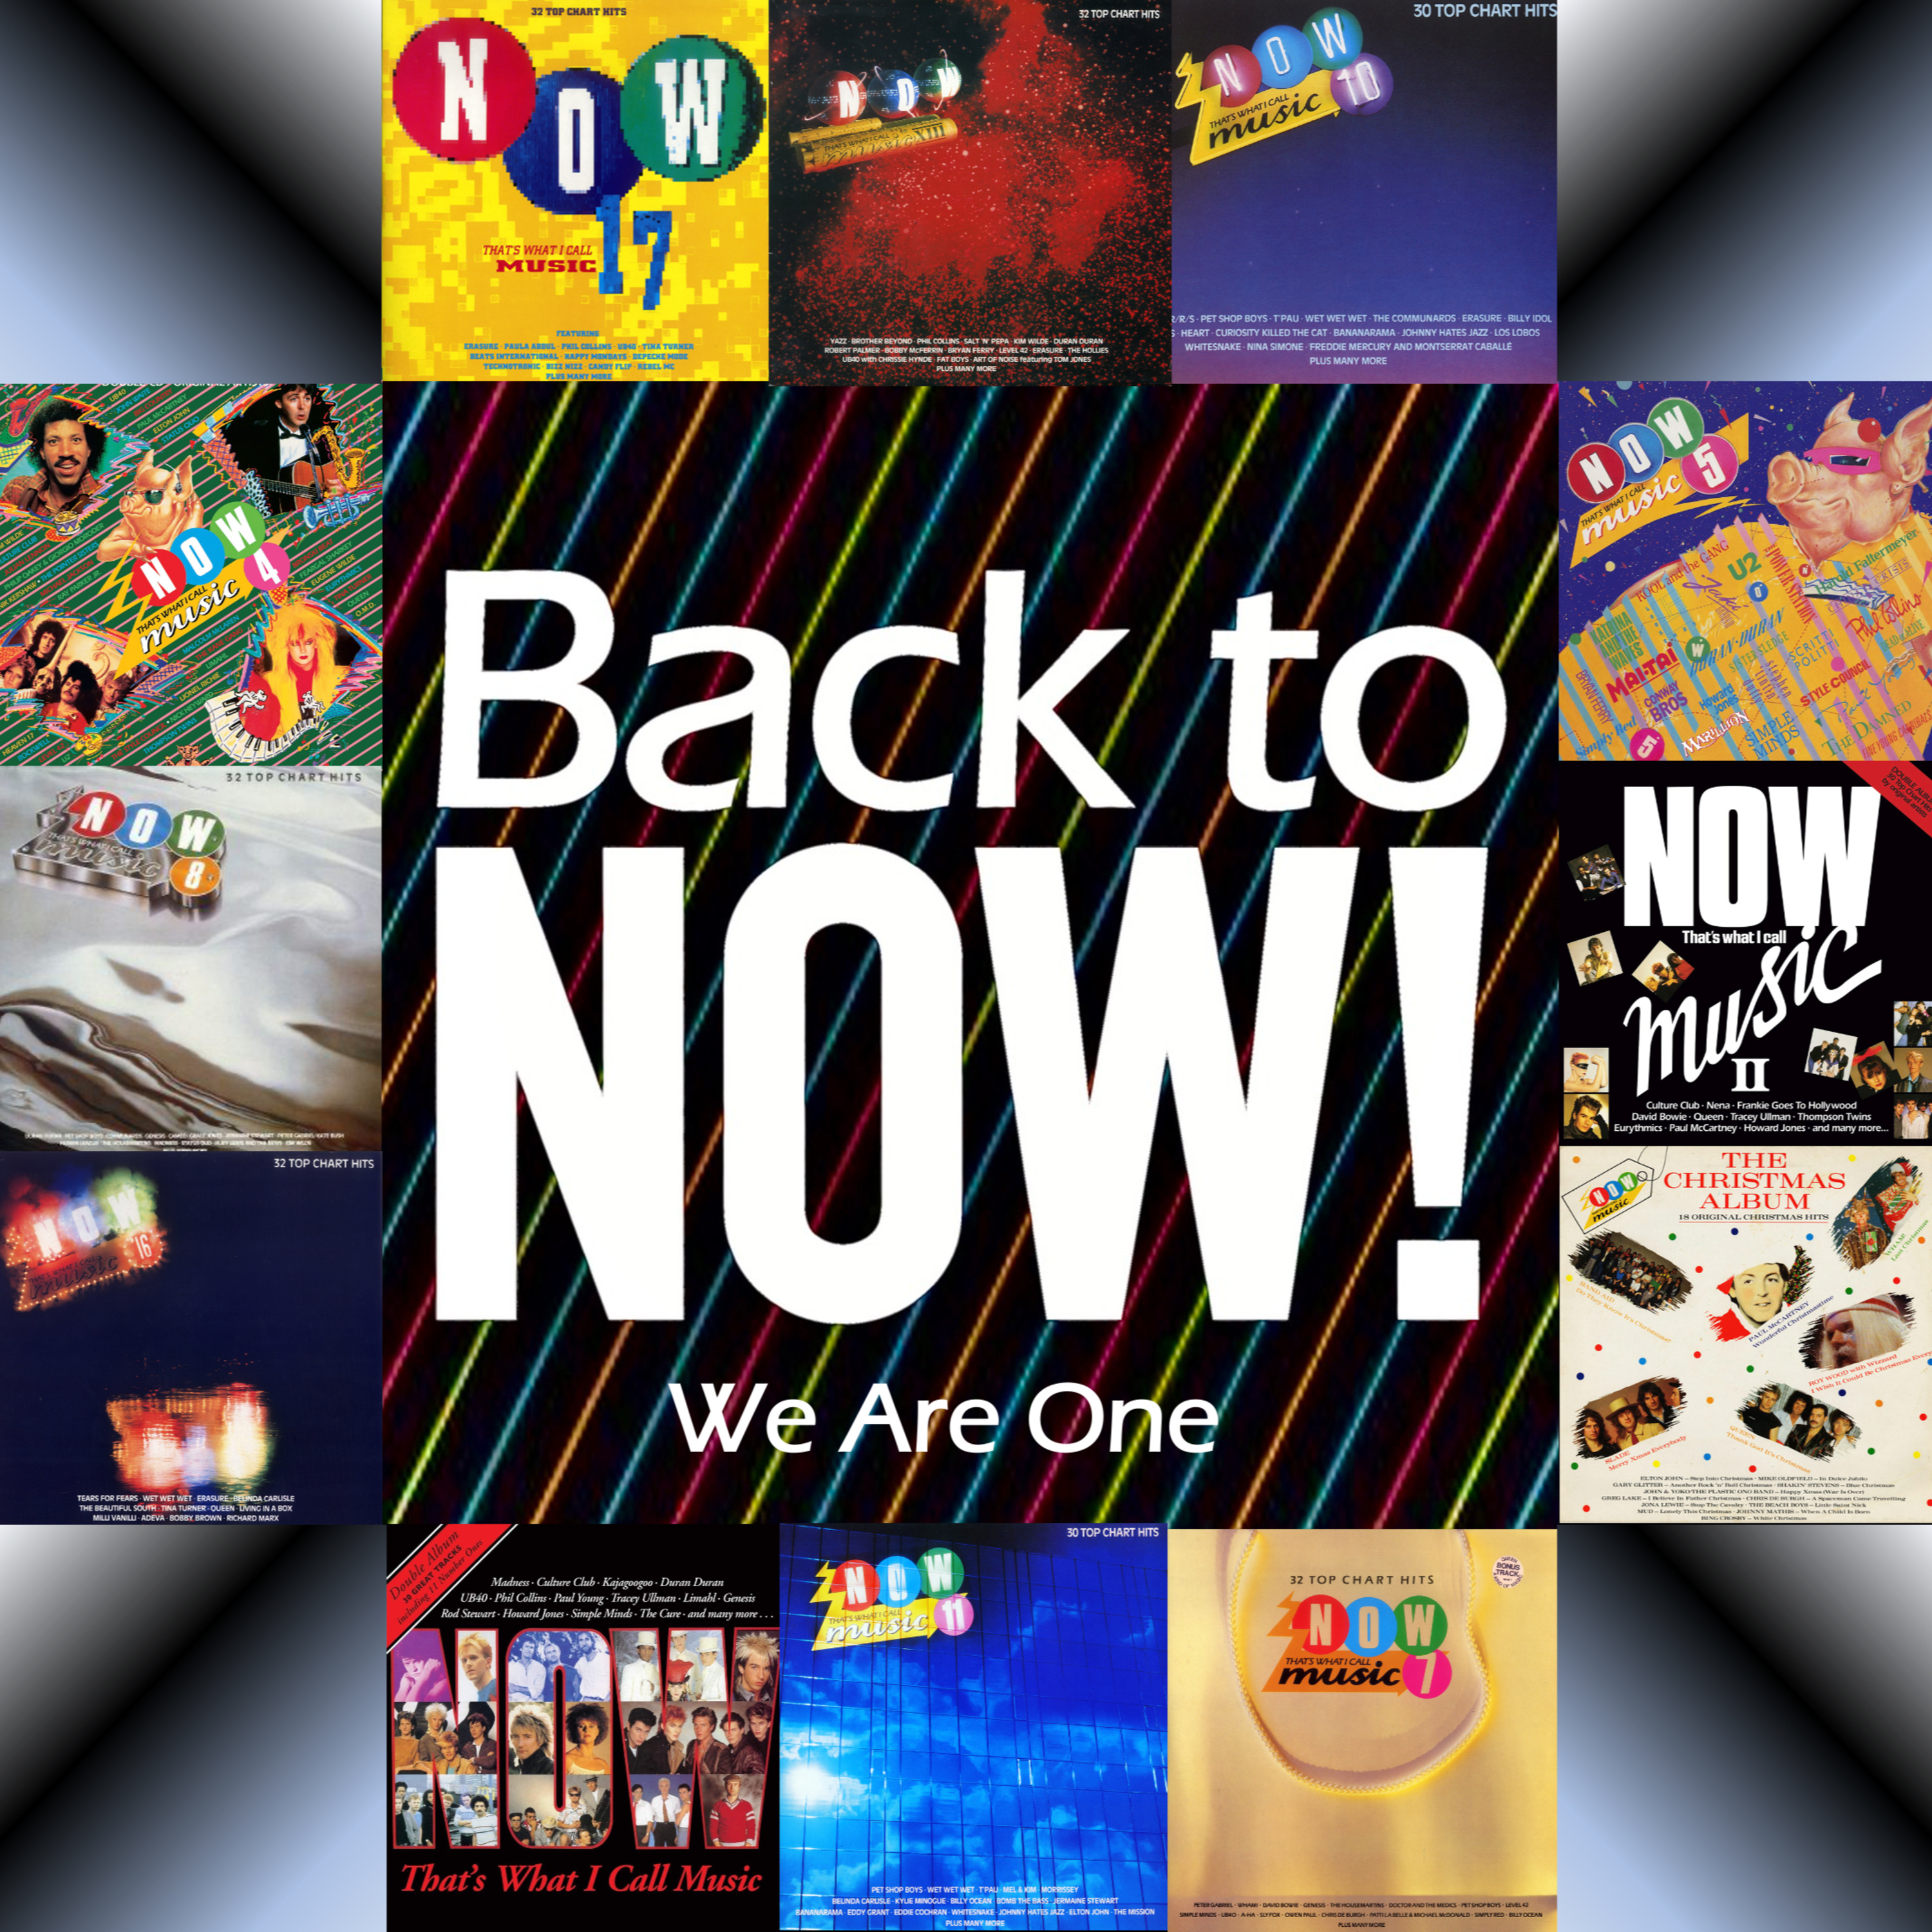 Back to NOW - We Are One!